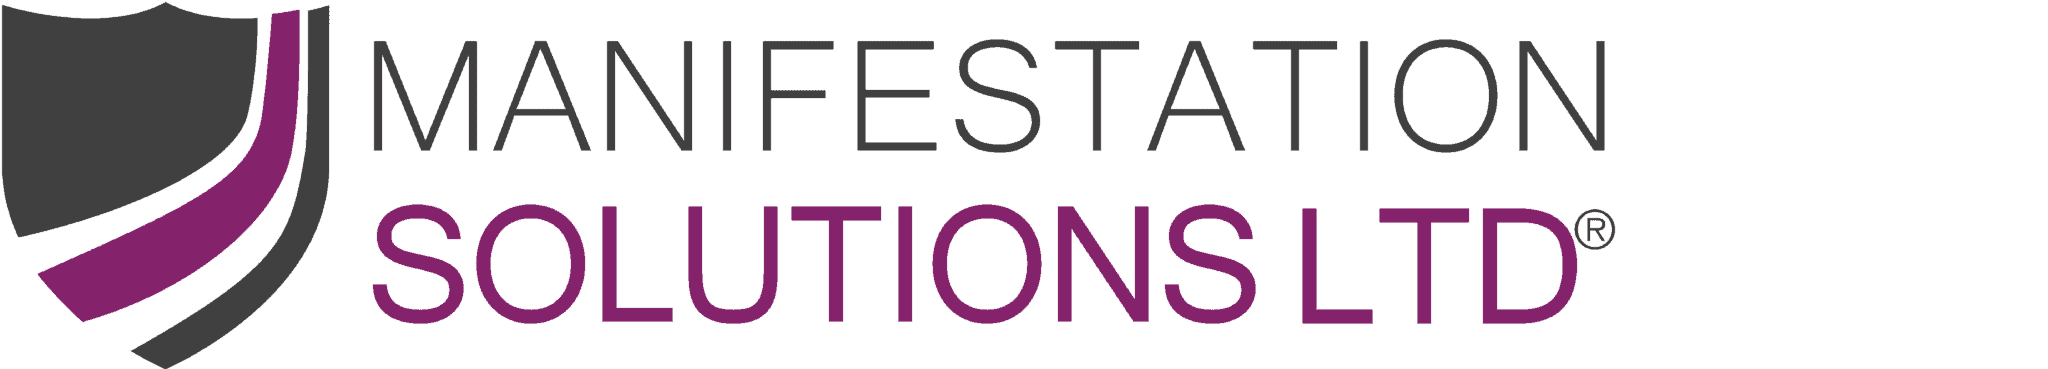 Manifestation Solutions 1 - Home